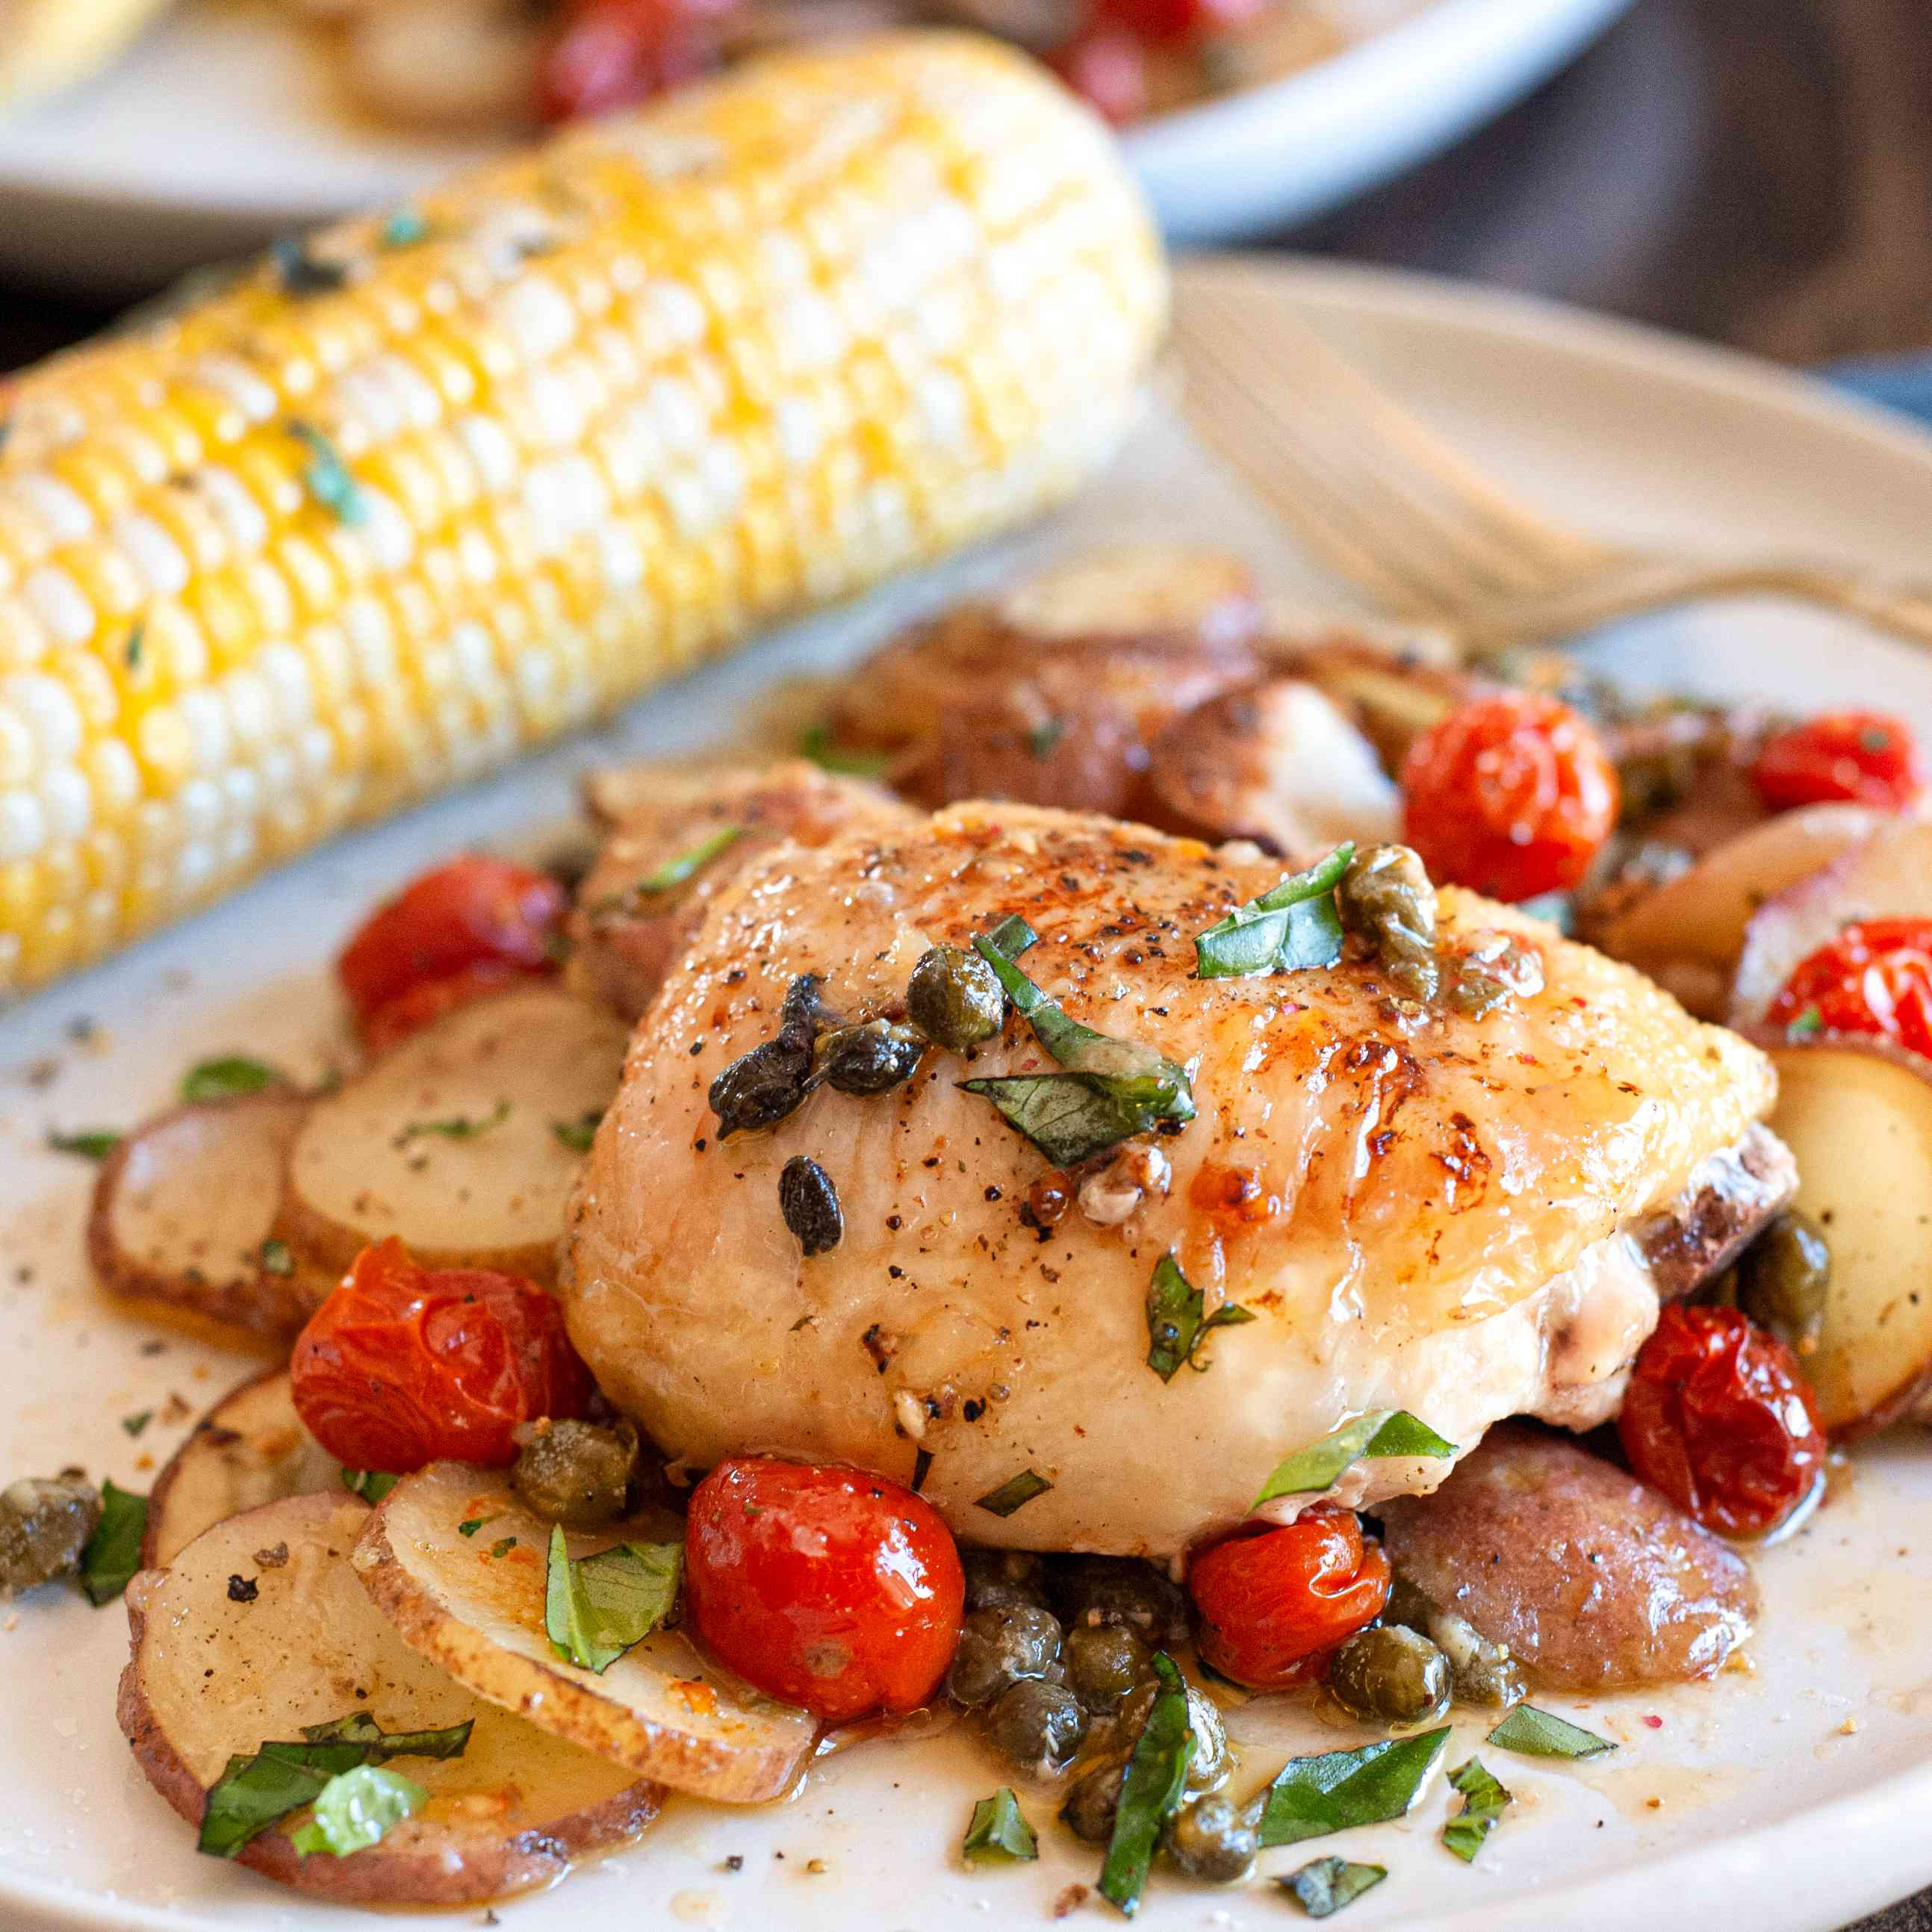 A plate of lemon chicken thighs with potatoes, tomatoes, and capers served with corn.